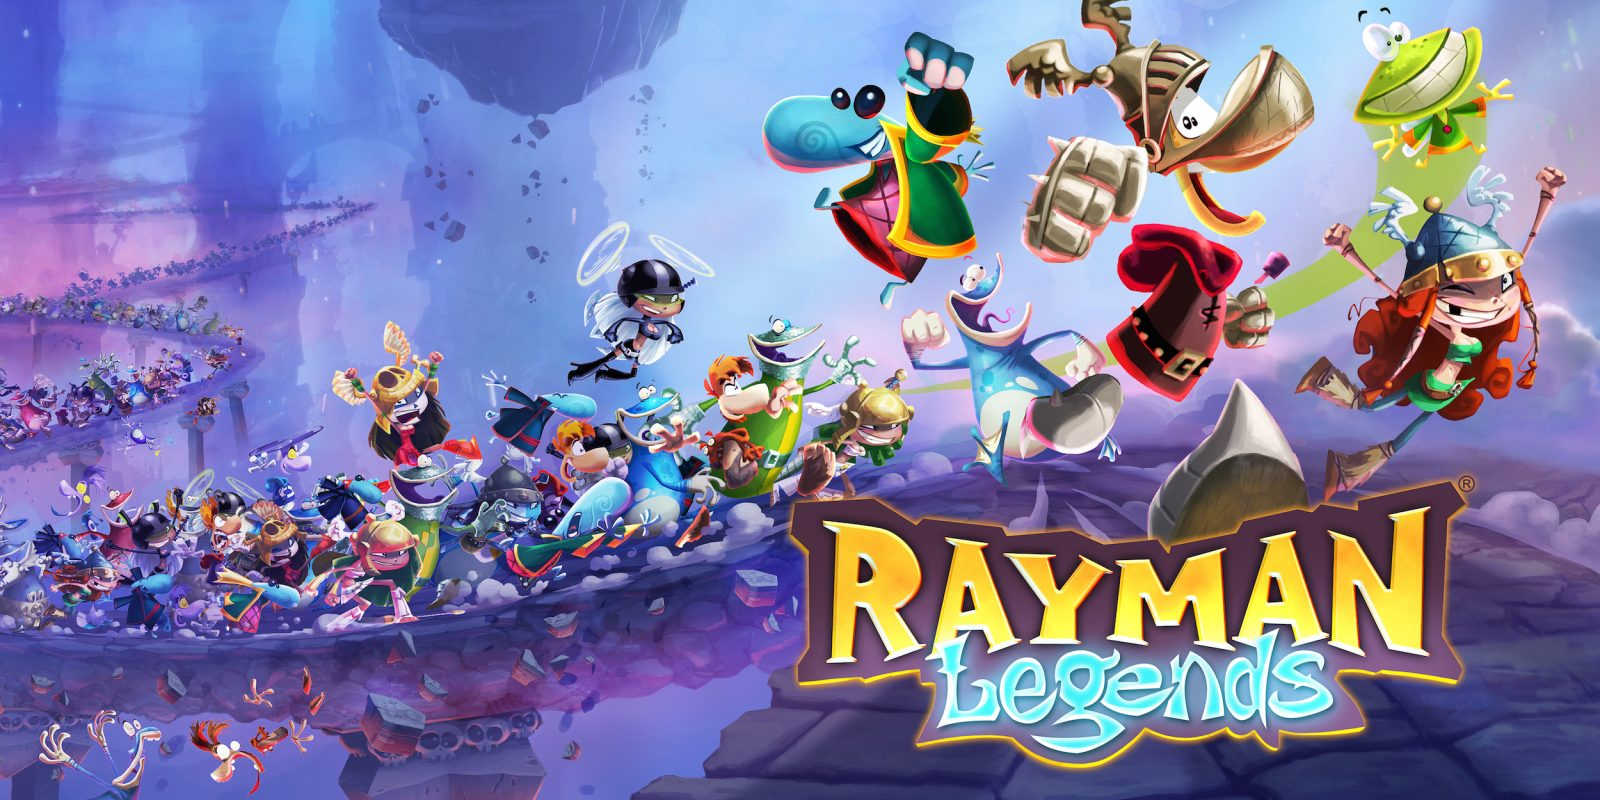 Today's Best Game Deals: Rayman Legends Definitive $20, Overcooked $5.50, more